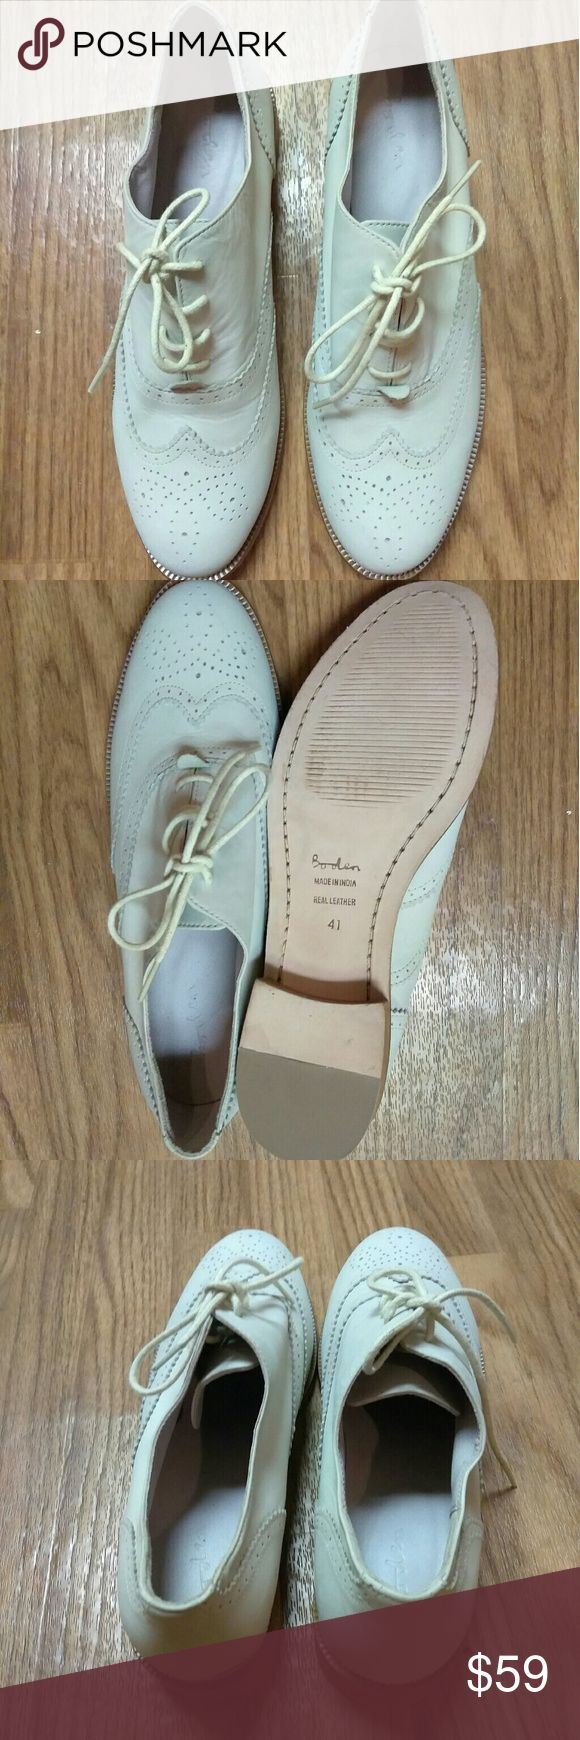 Boden shoes Boden shoes, worn once in excellent condition. Boden Shoes Flats & Loafers